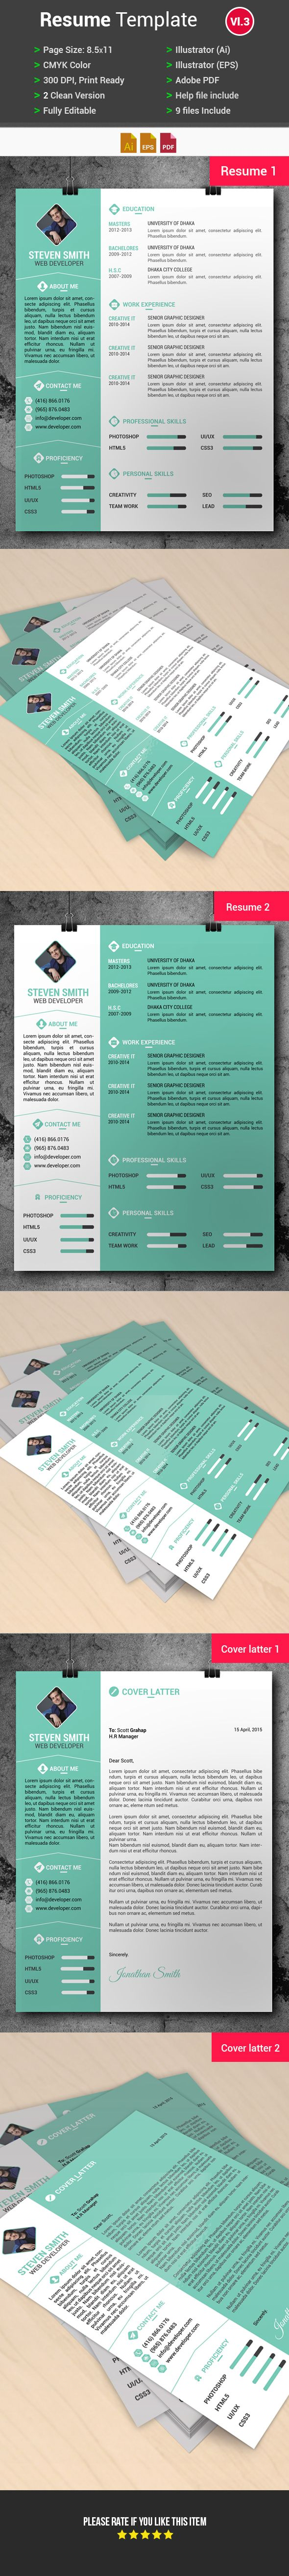 dallas resume service%0A Resume CV Template  Free Download  by Arahimdesign